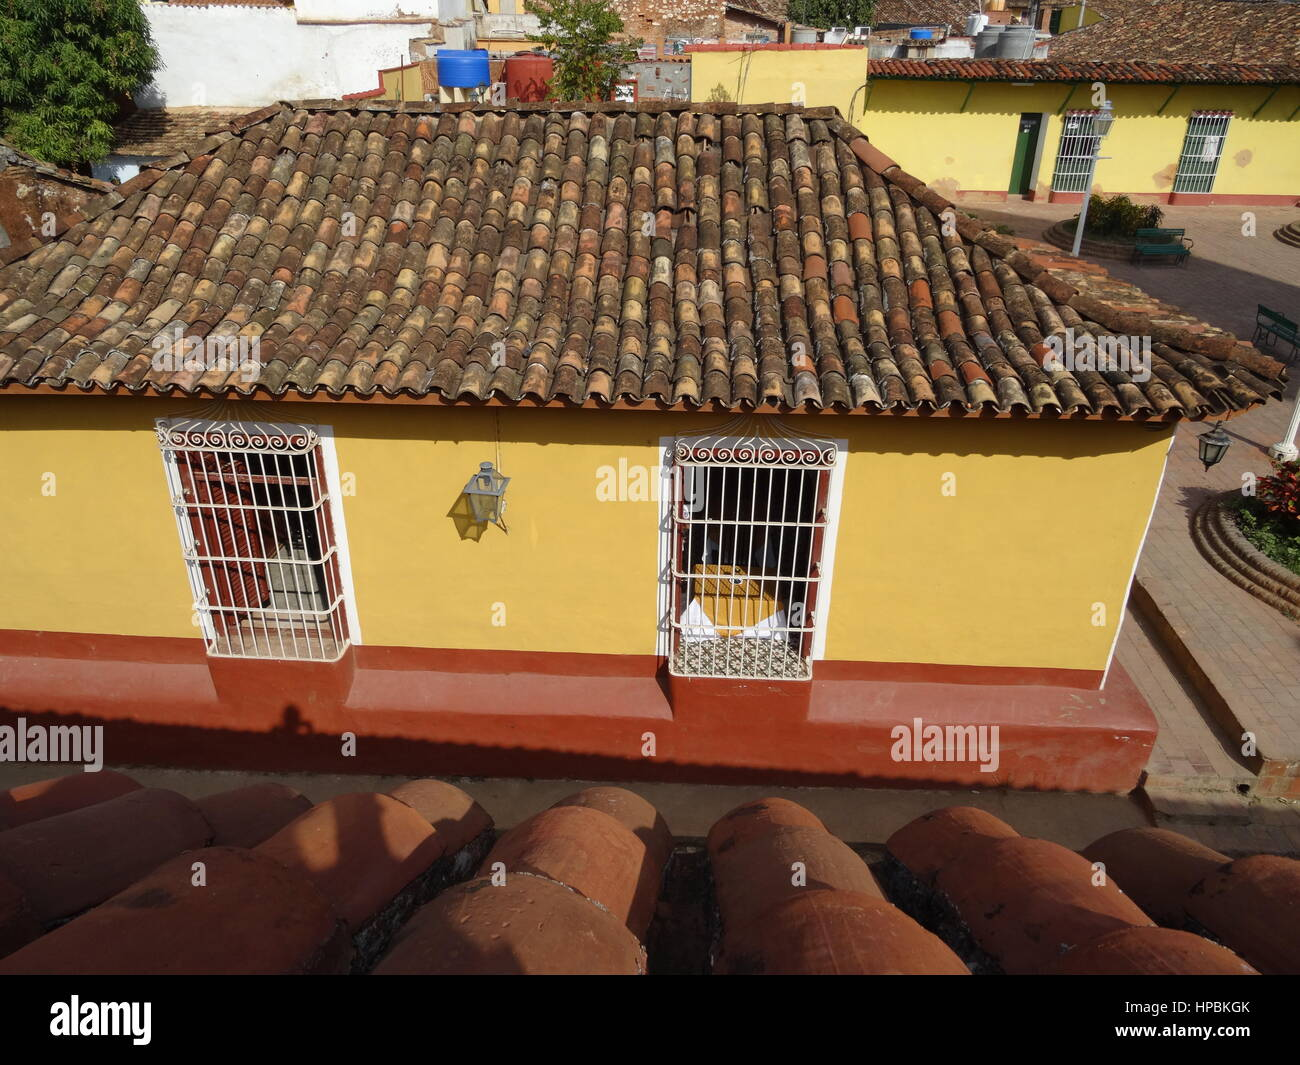 Trinidad,Cuba view from above, rooftops and colourful old colonial buildings - Stock Image